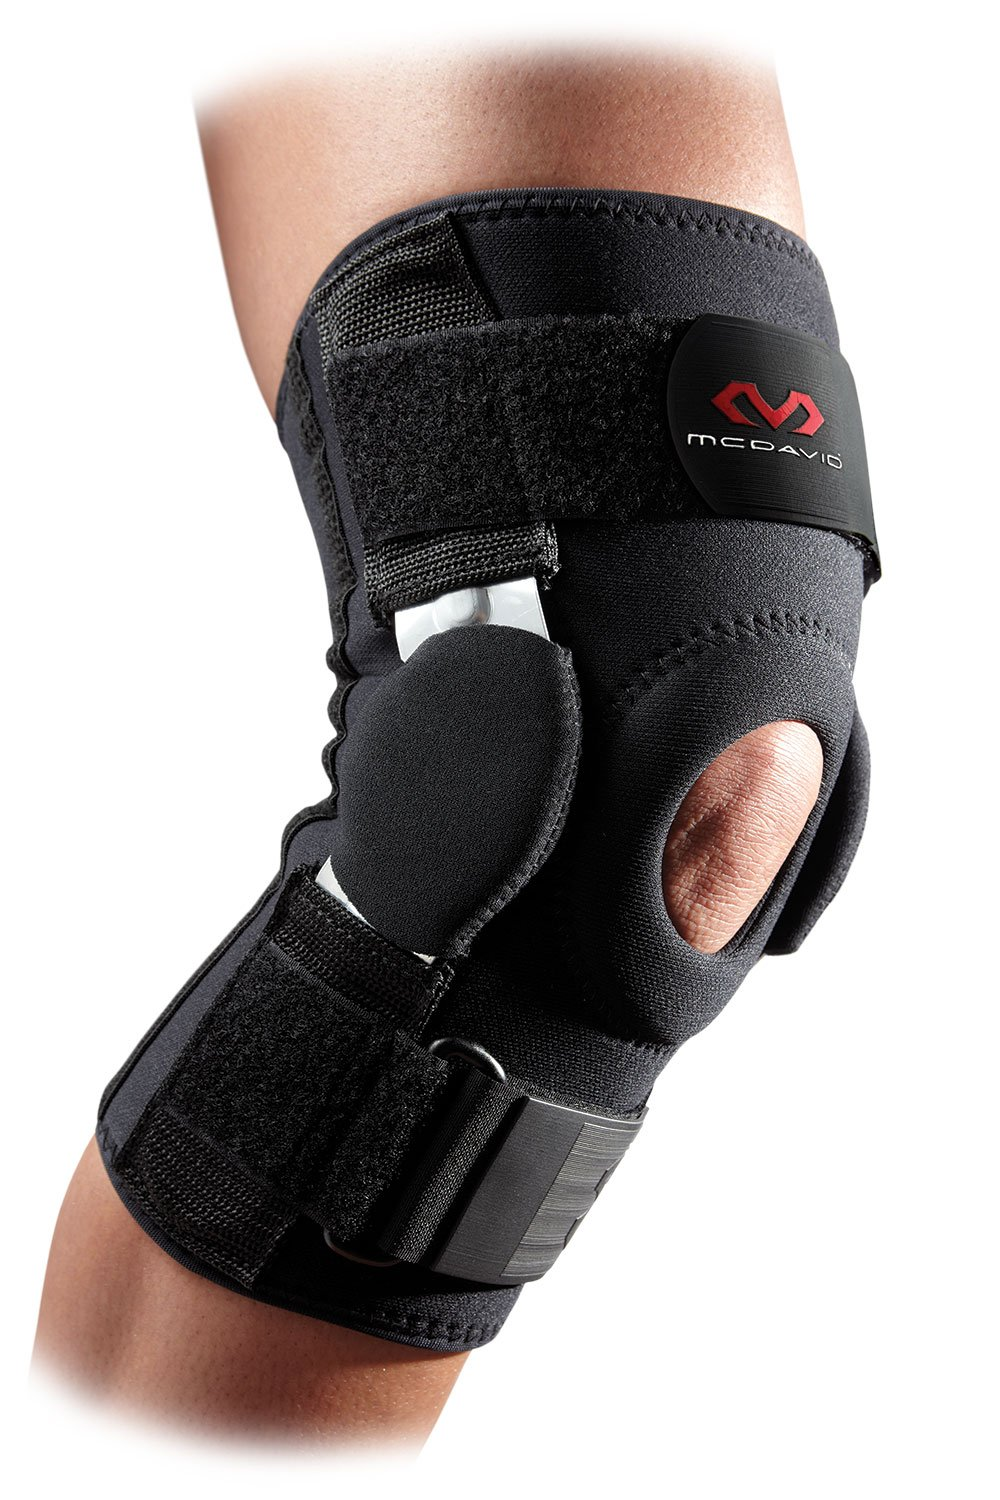 63fddf0750 Mcdavid Knee Brace, Maximum Knee Support & Compression for Knee Stability &  Recovery Aid, Patella Tendon Support, Tendonitis Pain Relief, Ligament  Support, ...